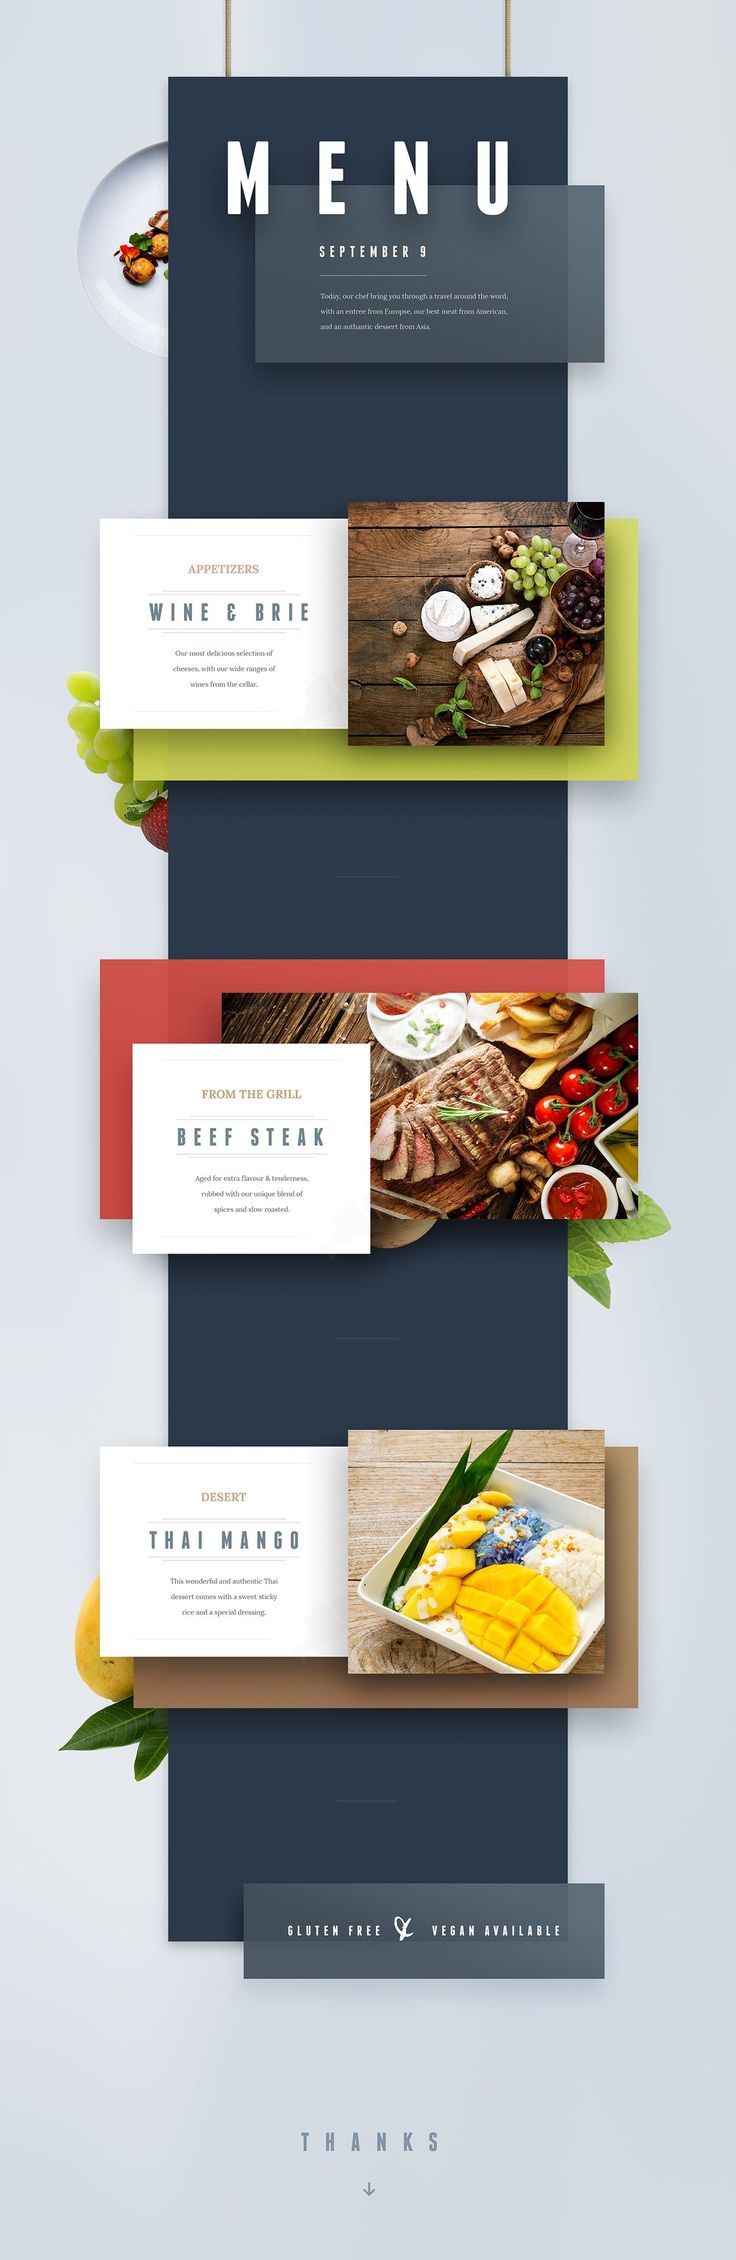 Web design art inspiration food/cooking category - #foodwebdesign #cookingwebdesign #foodwordpressthemes #cookingwordpressthemes